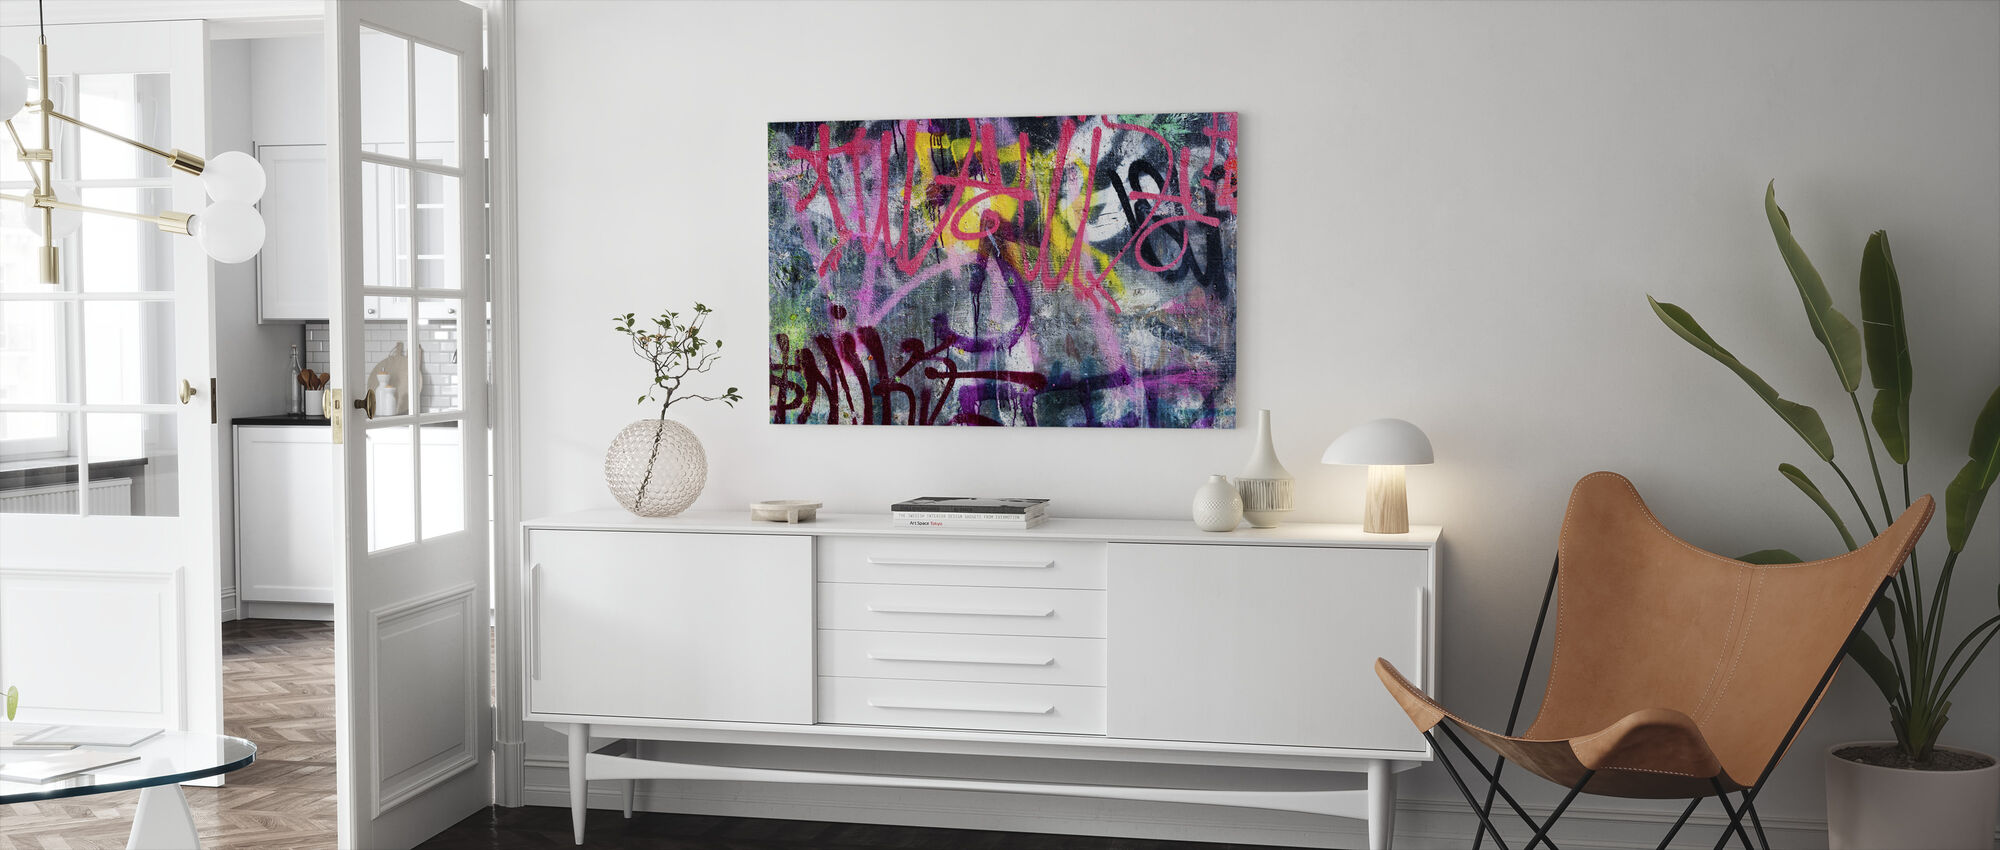 Colorful Graffiti - Canvas print - Living Room